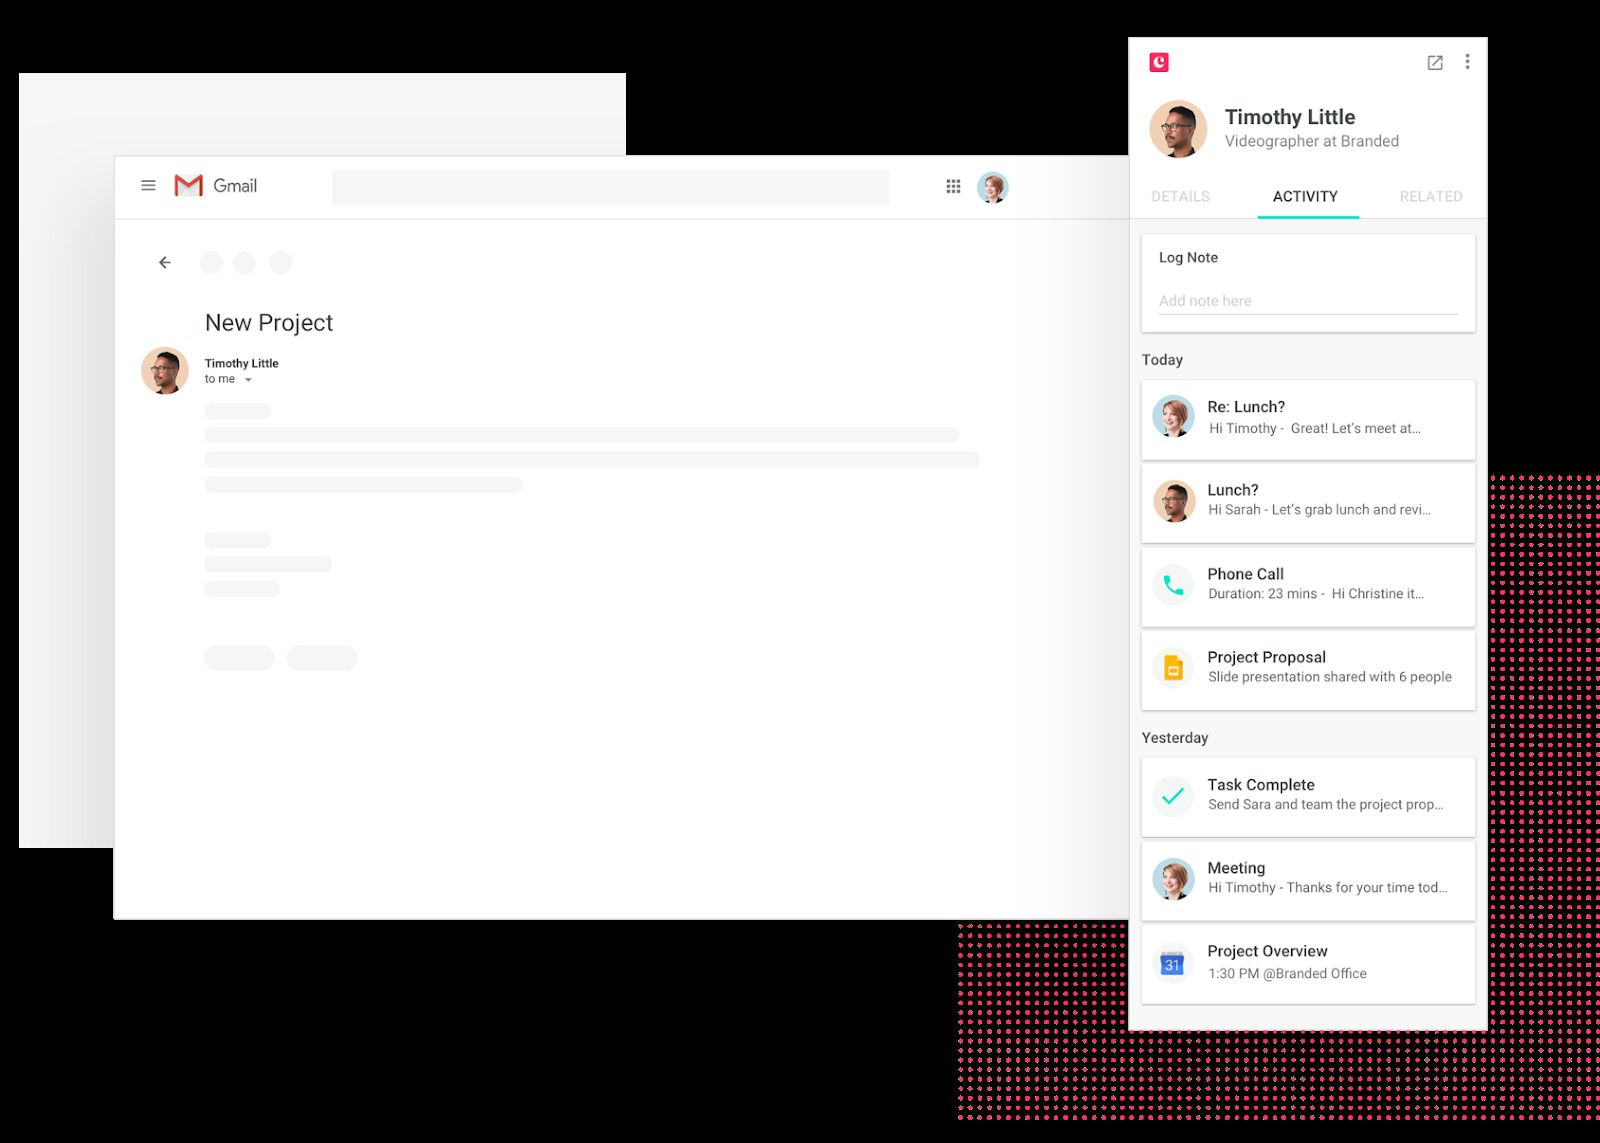 Integration with email